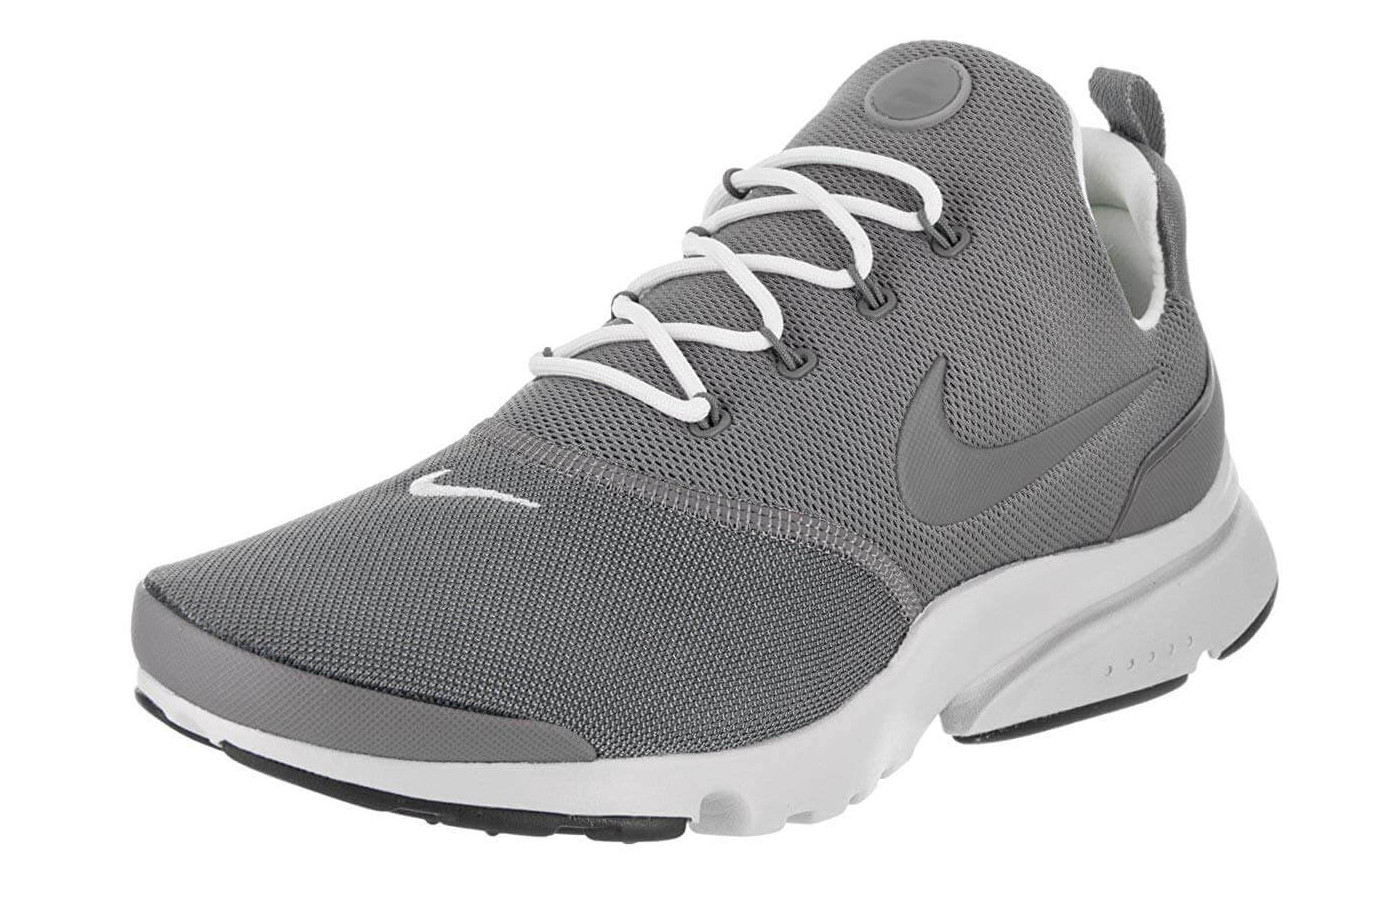 chaussures de sport 695c4 825e1 Nike Air Presto Fly